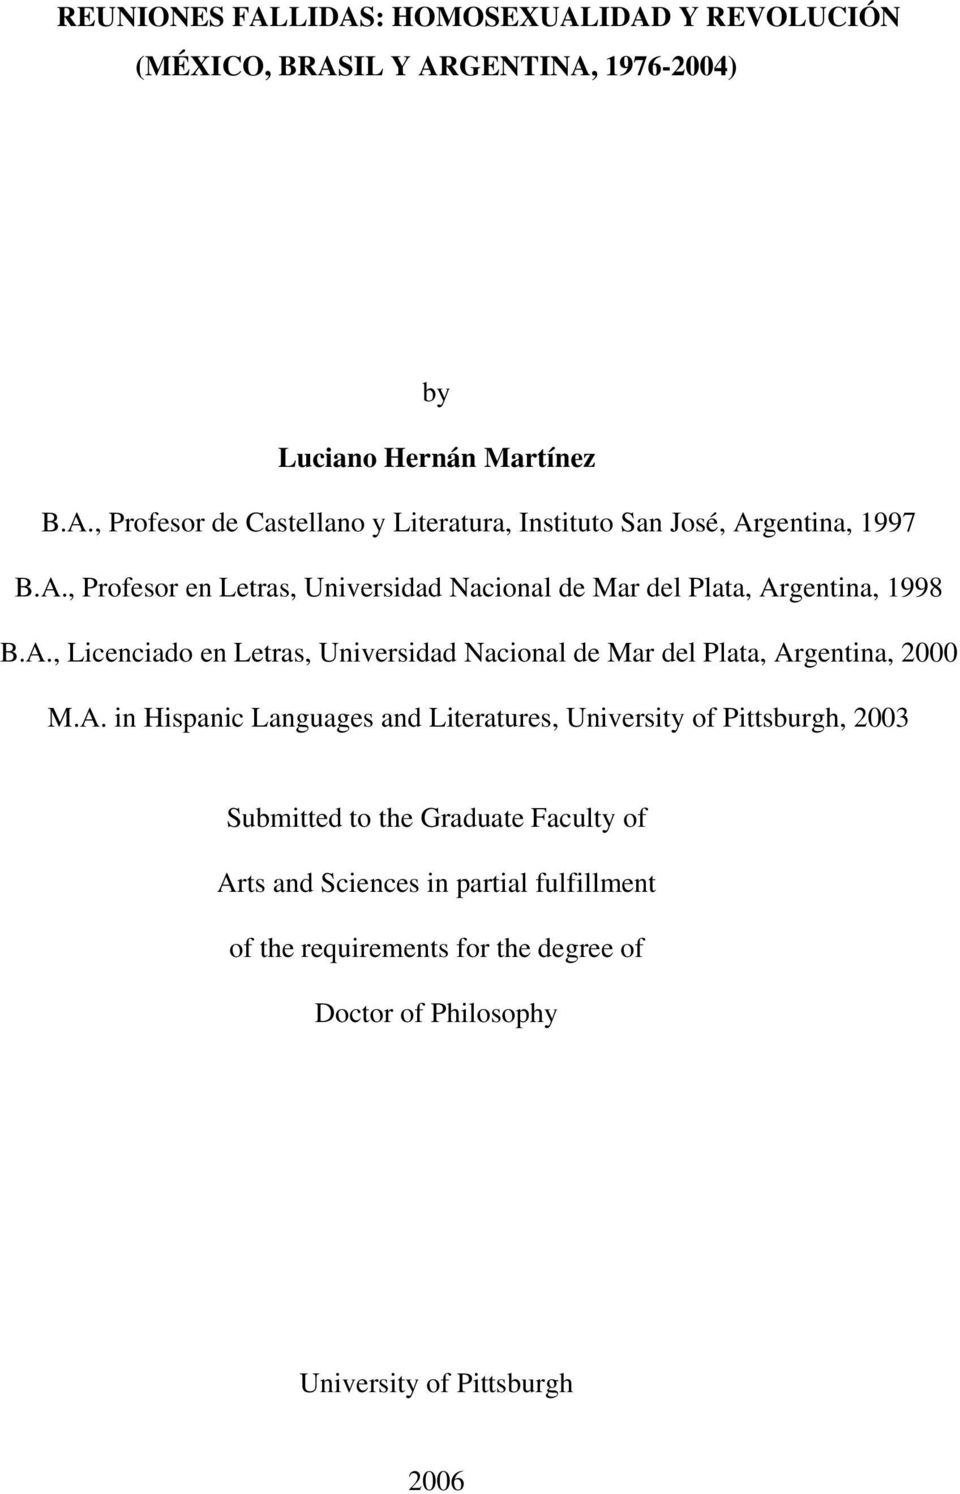 A. in Hispanic Languages and Literatures, University of Pittsburgh, 2003 Submitted to the Graduate Faculty of Arts and Sciences in partial